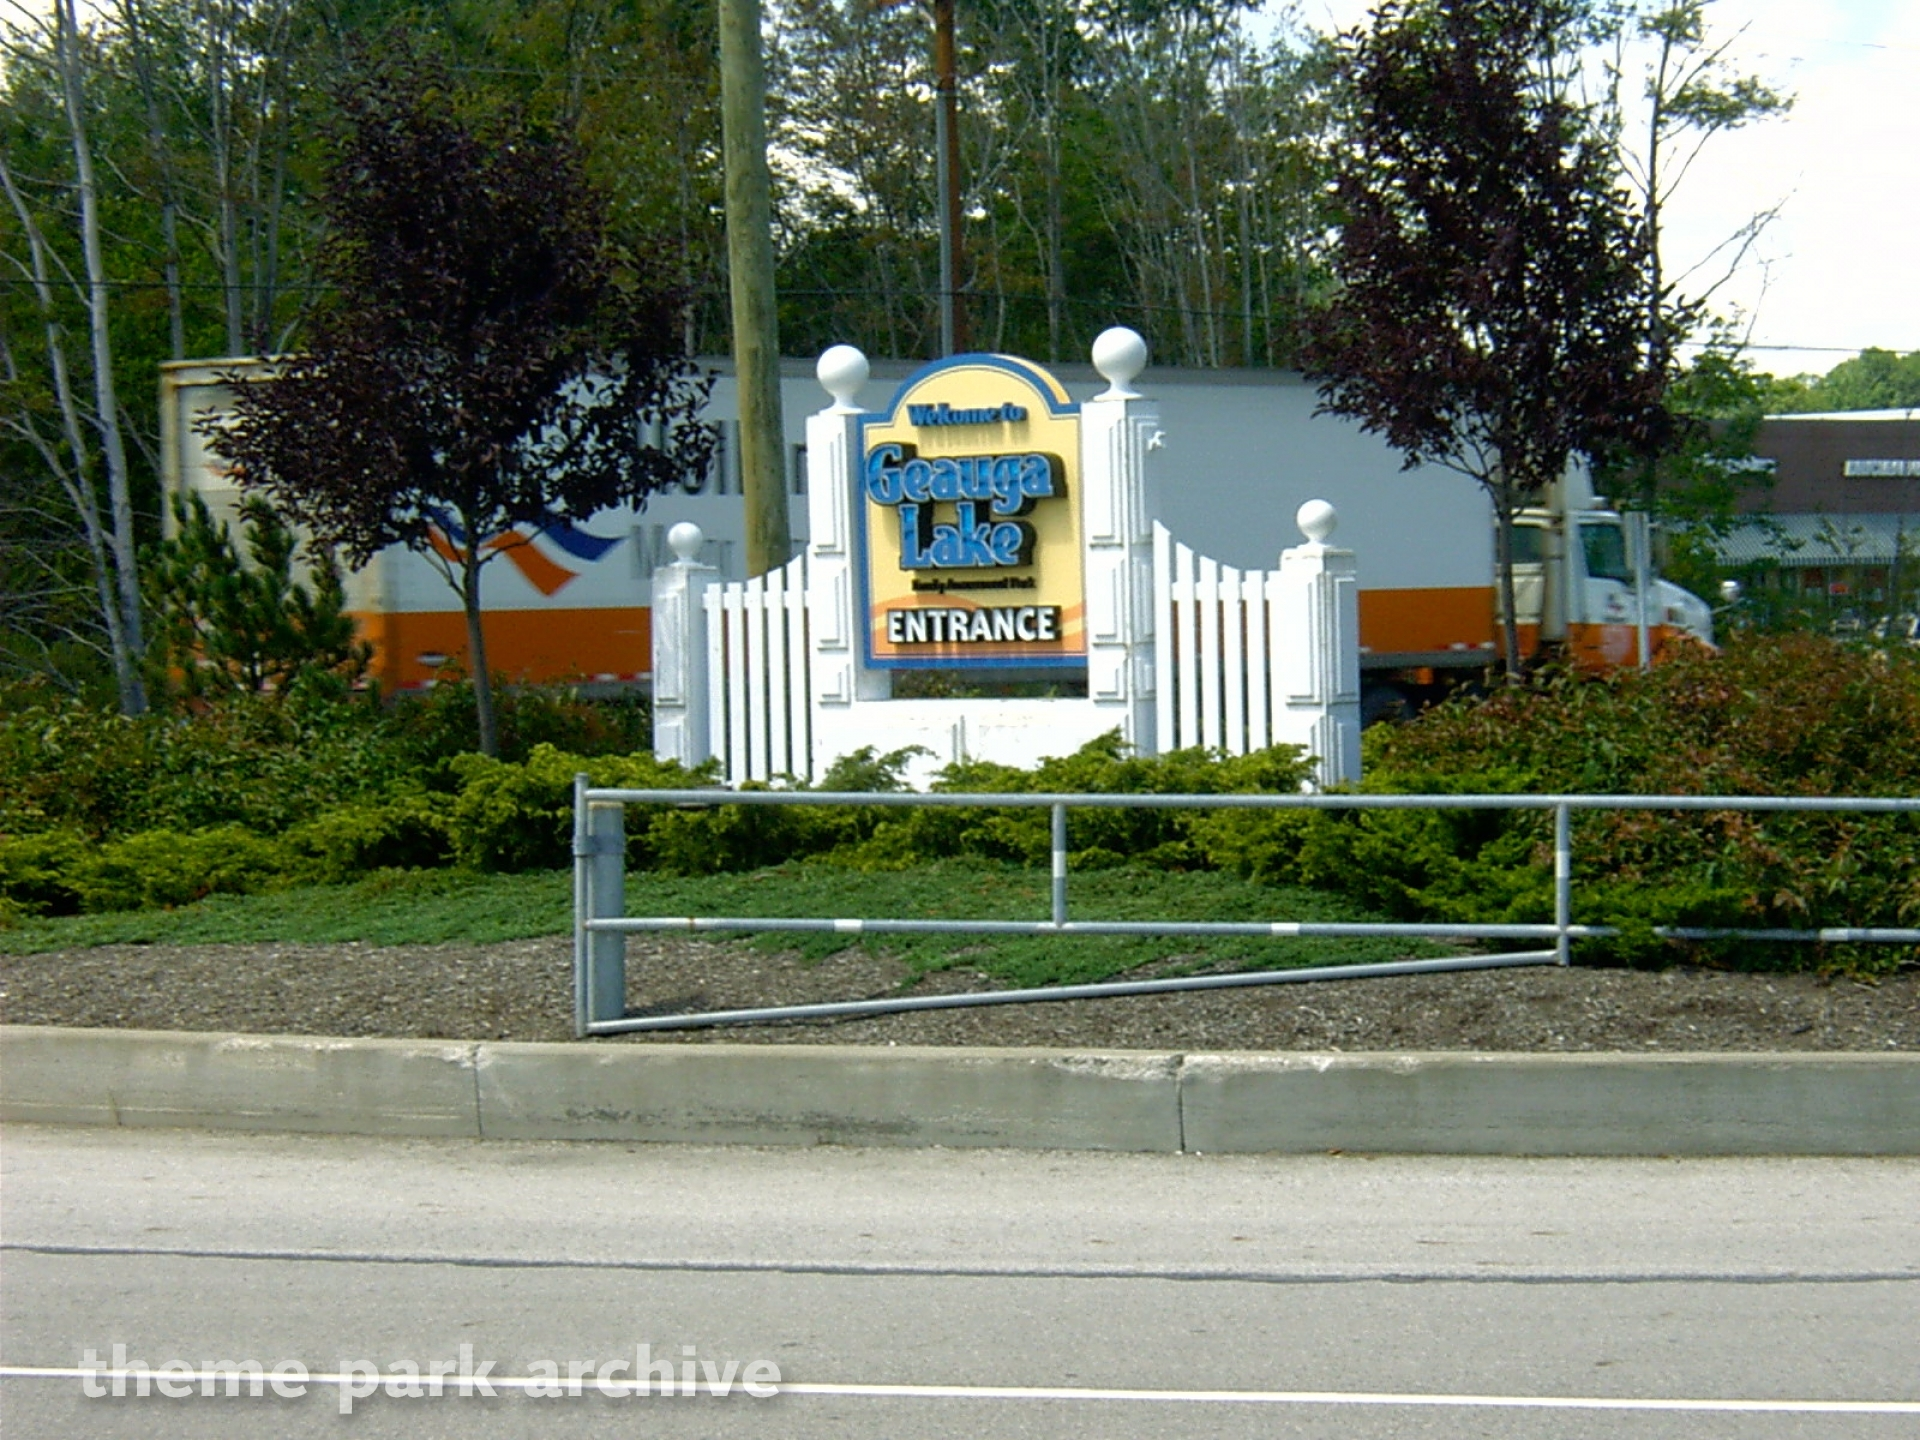 Geauga Lake July 22, 2004 | Theme Park Archive